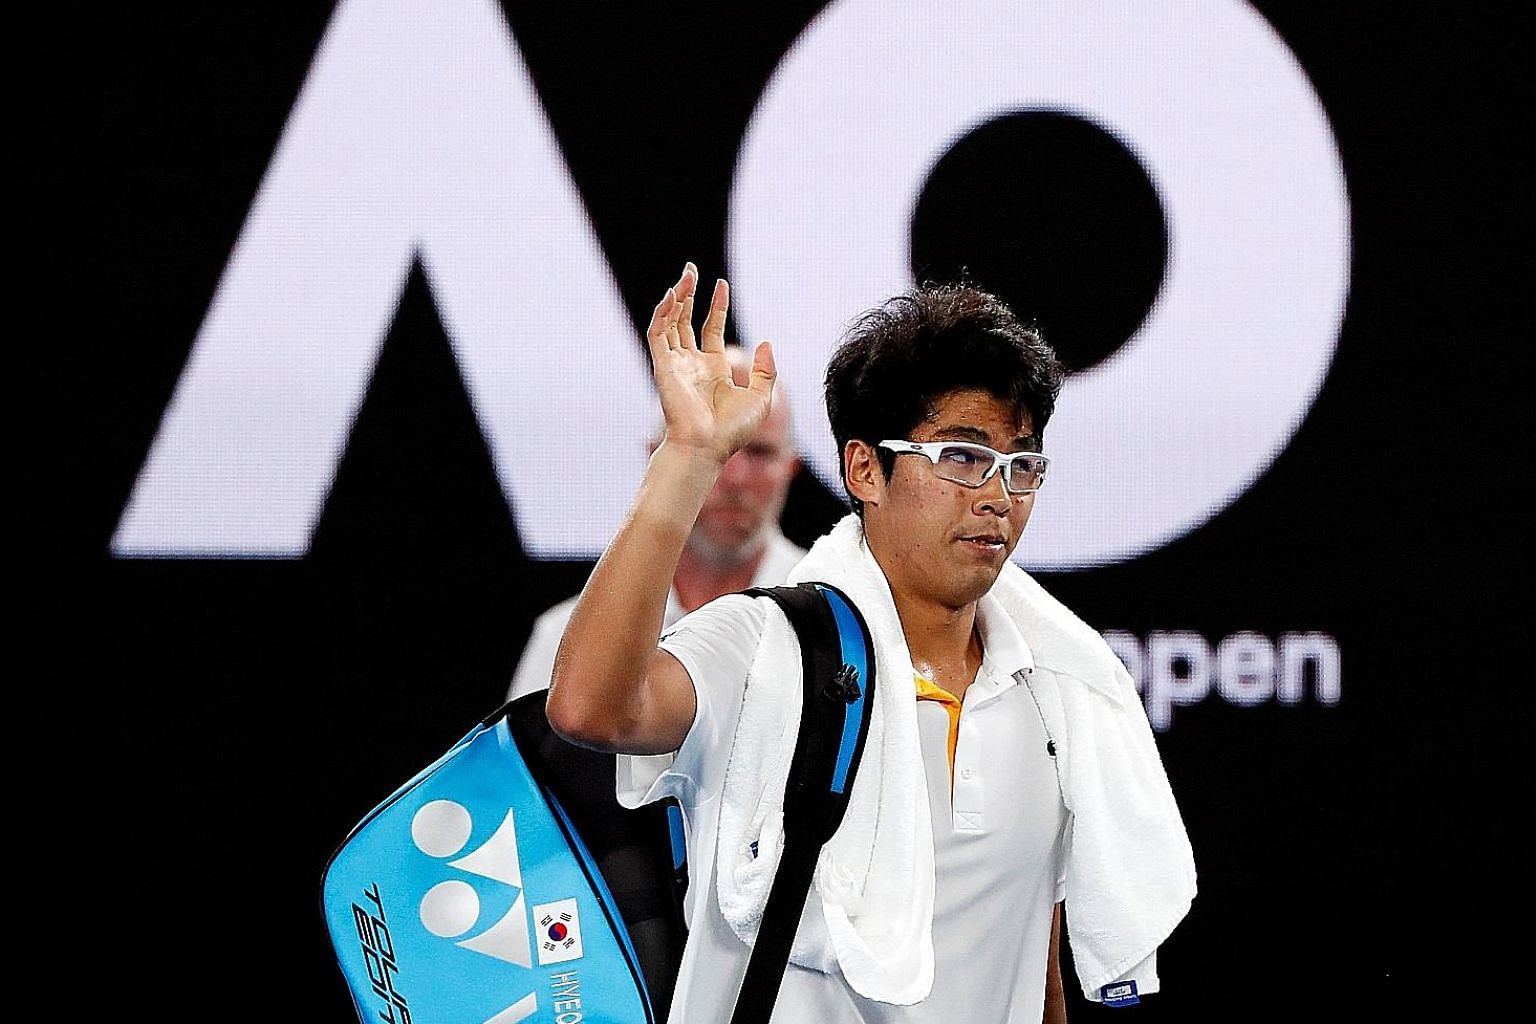 Chung Hyeon leaving the Rod Laver Arena in Melbourne yesterday after retiring injured against Swiss legend Roger Federer in the semi-finals.